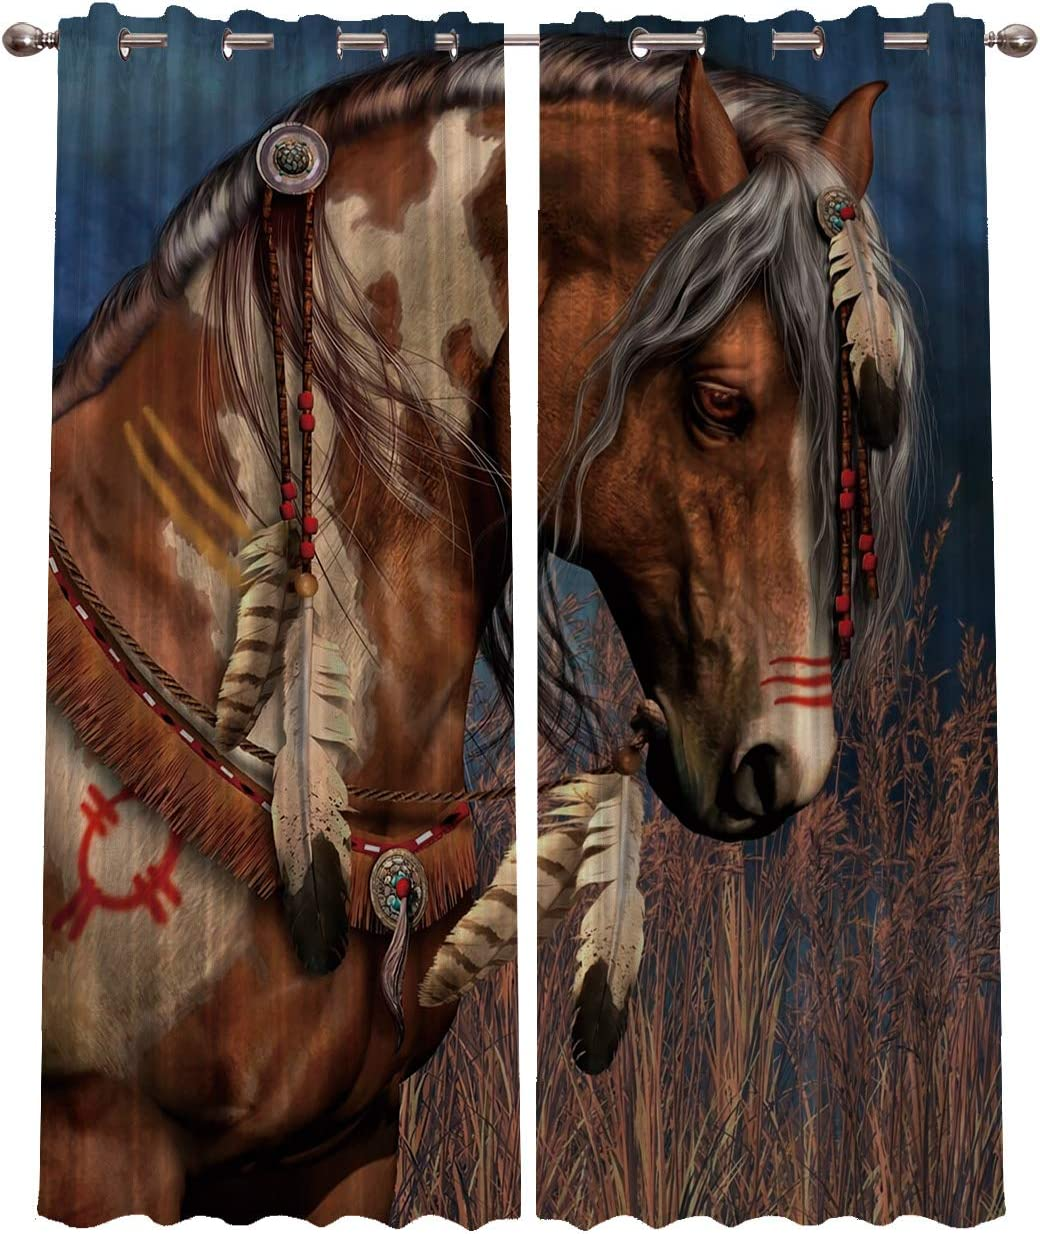 Blackout Curtains for Bedroom Home Decor,Hand Painting Cheval Indien Horse Animal Curtains,Window Treatment Thermal Insulated Grommet Blackout Drapes for Living Room,Set of 2 Panels,80 W By 84 L